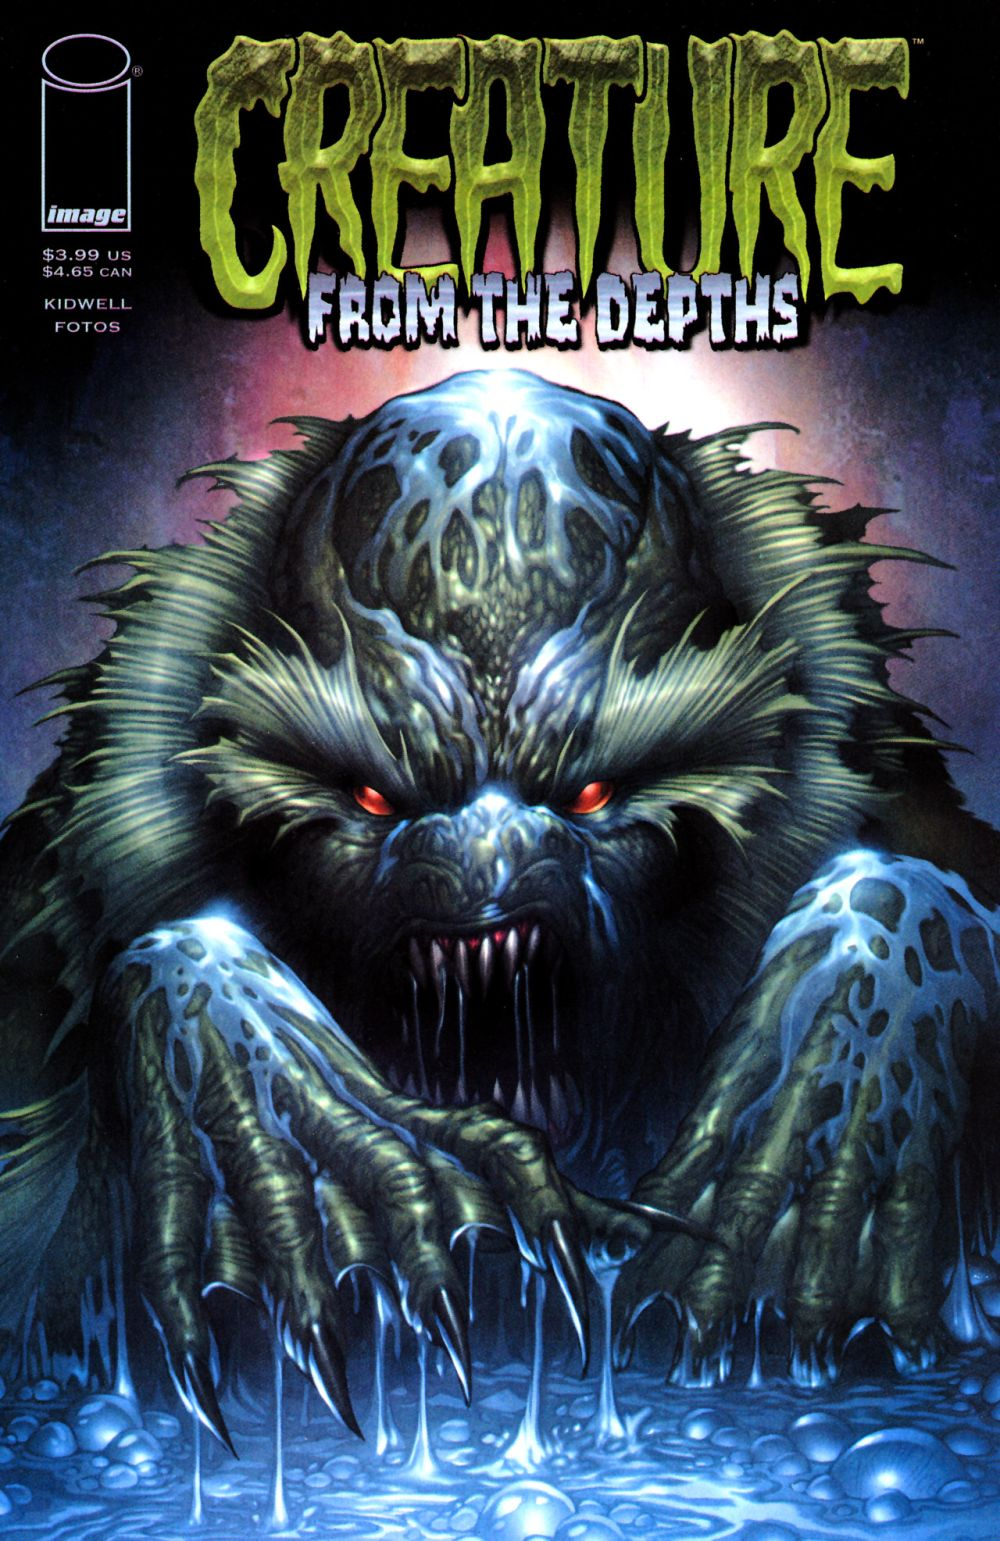 Creature From The Depths [Image] Os1 0001.jpg